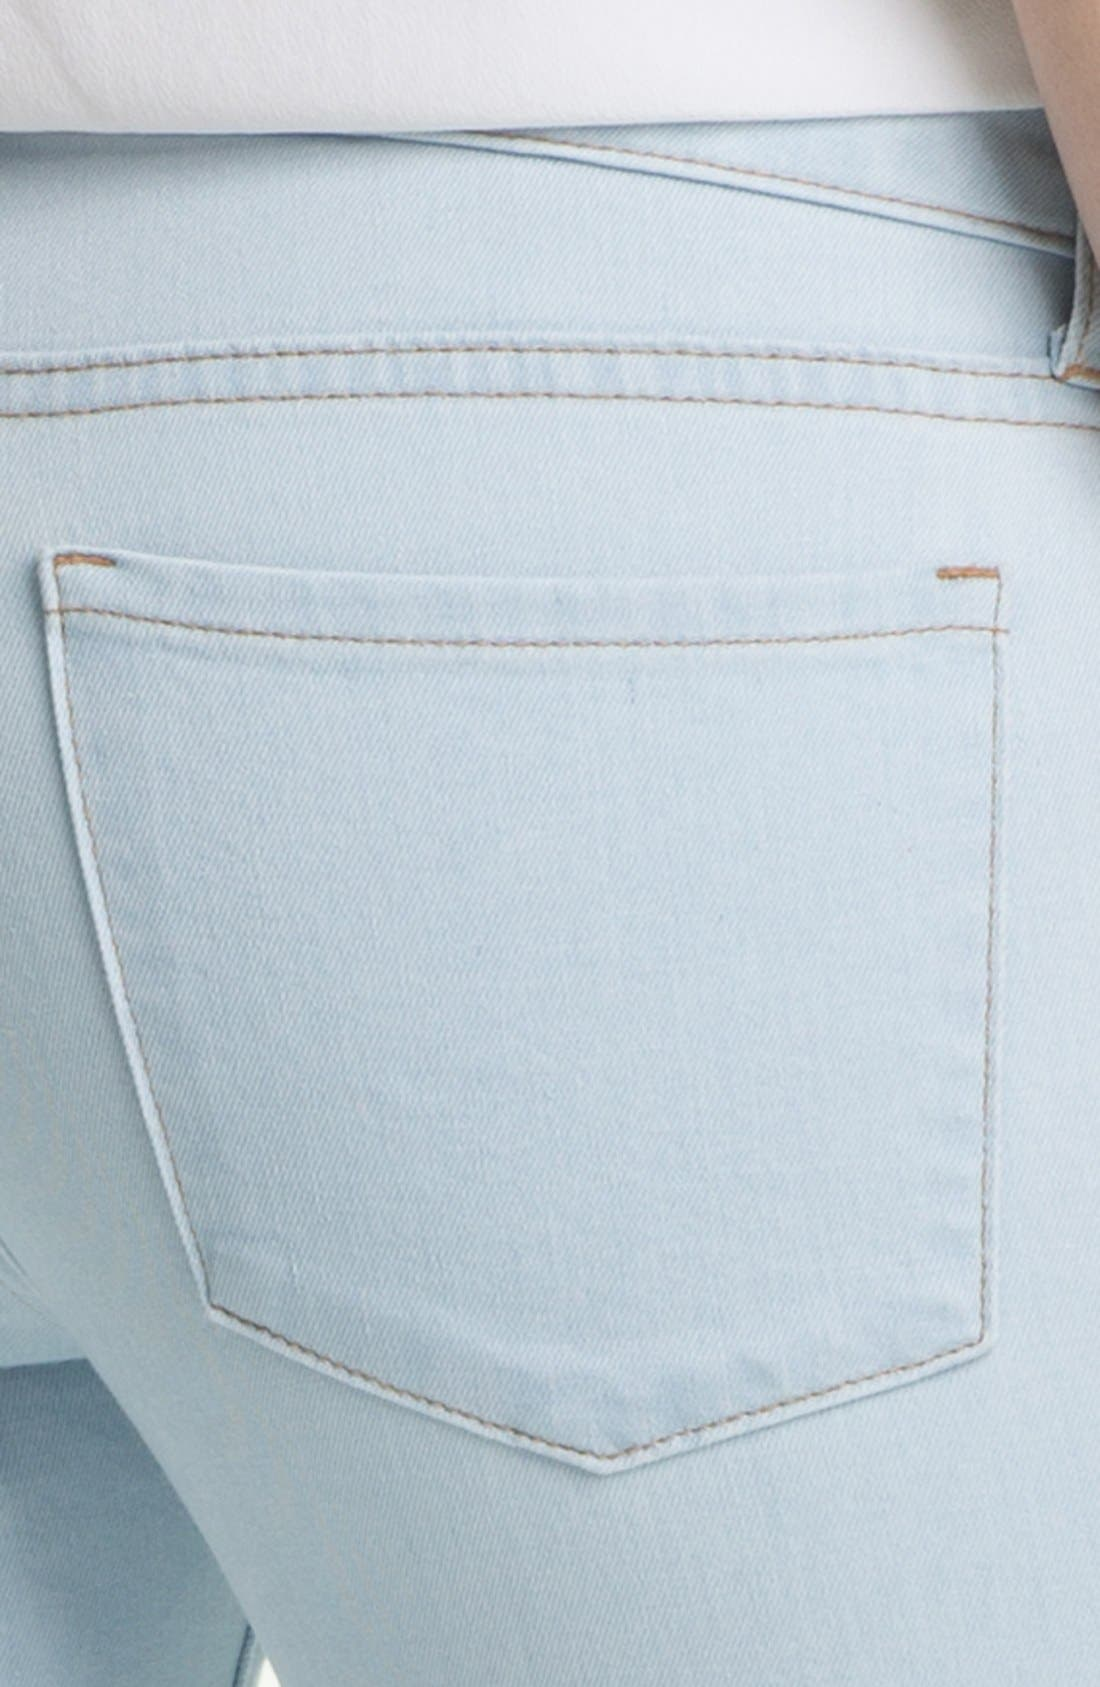 Alternate Image 3  - Two by Vince Camuto Skinny Jeans (Pale Blue)